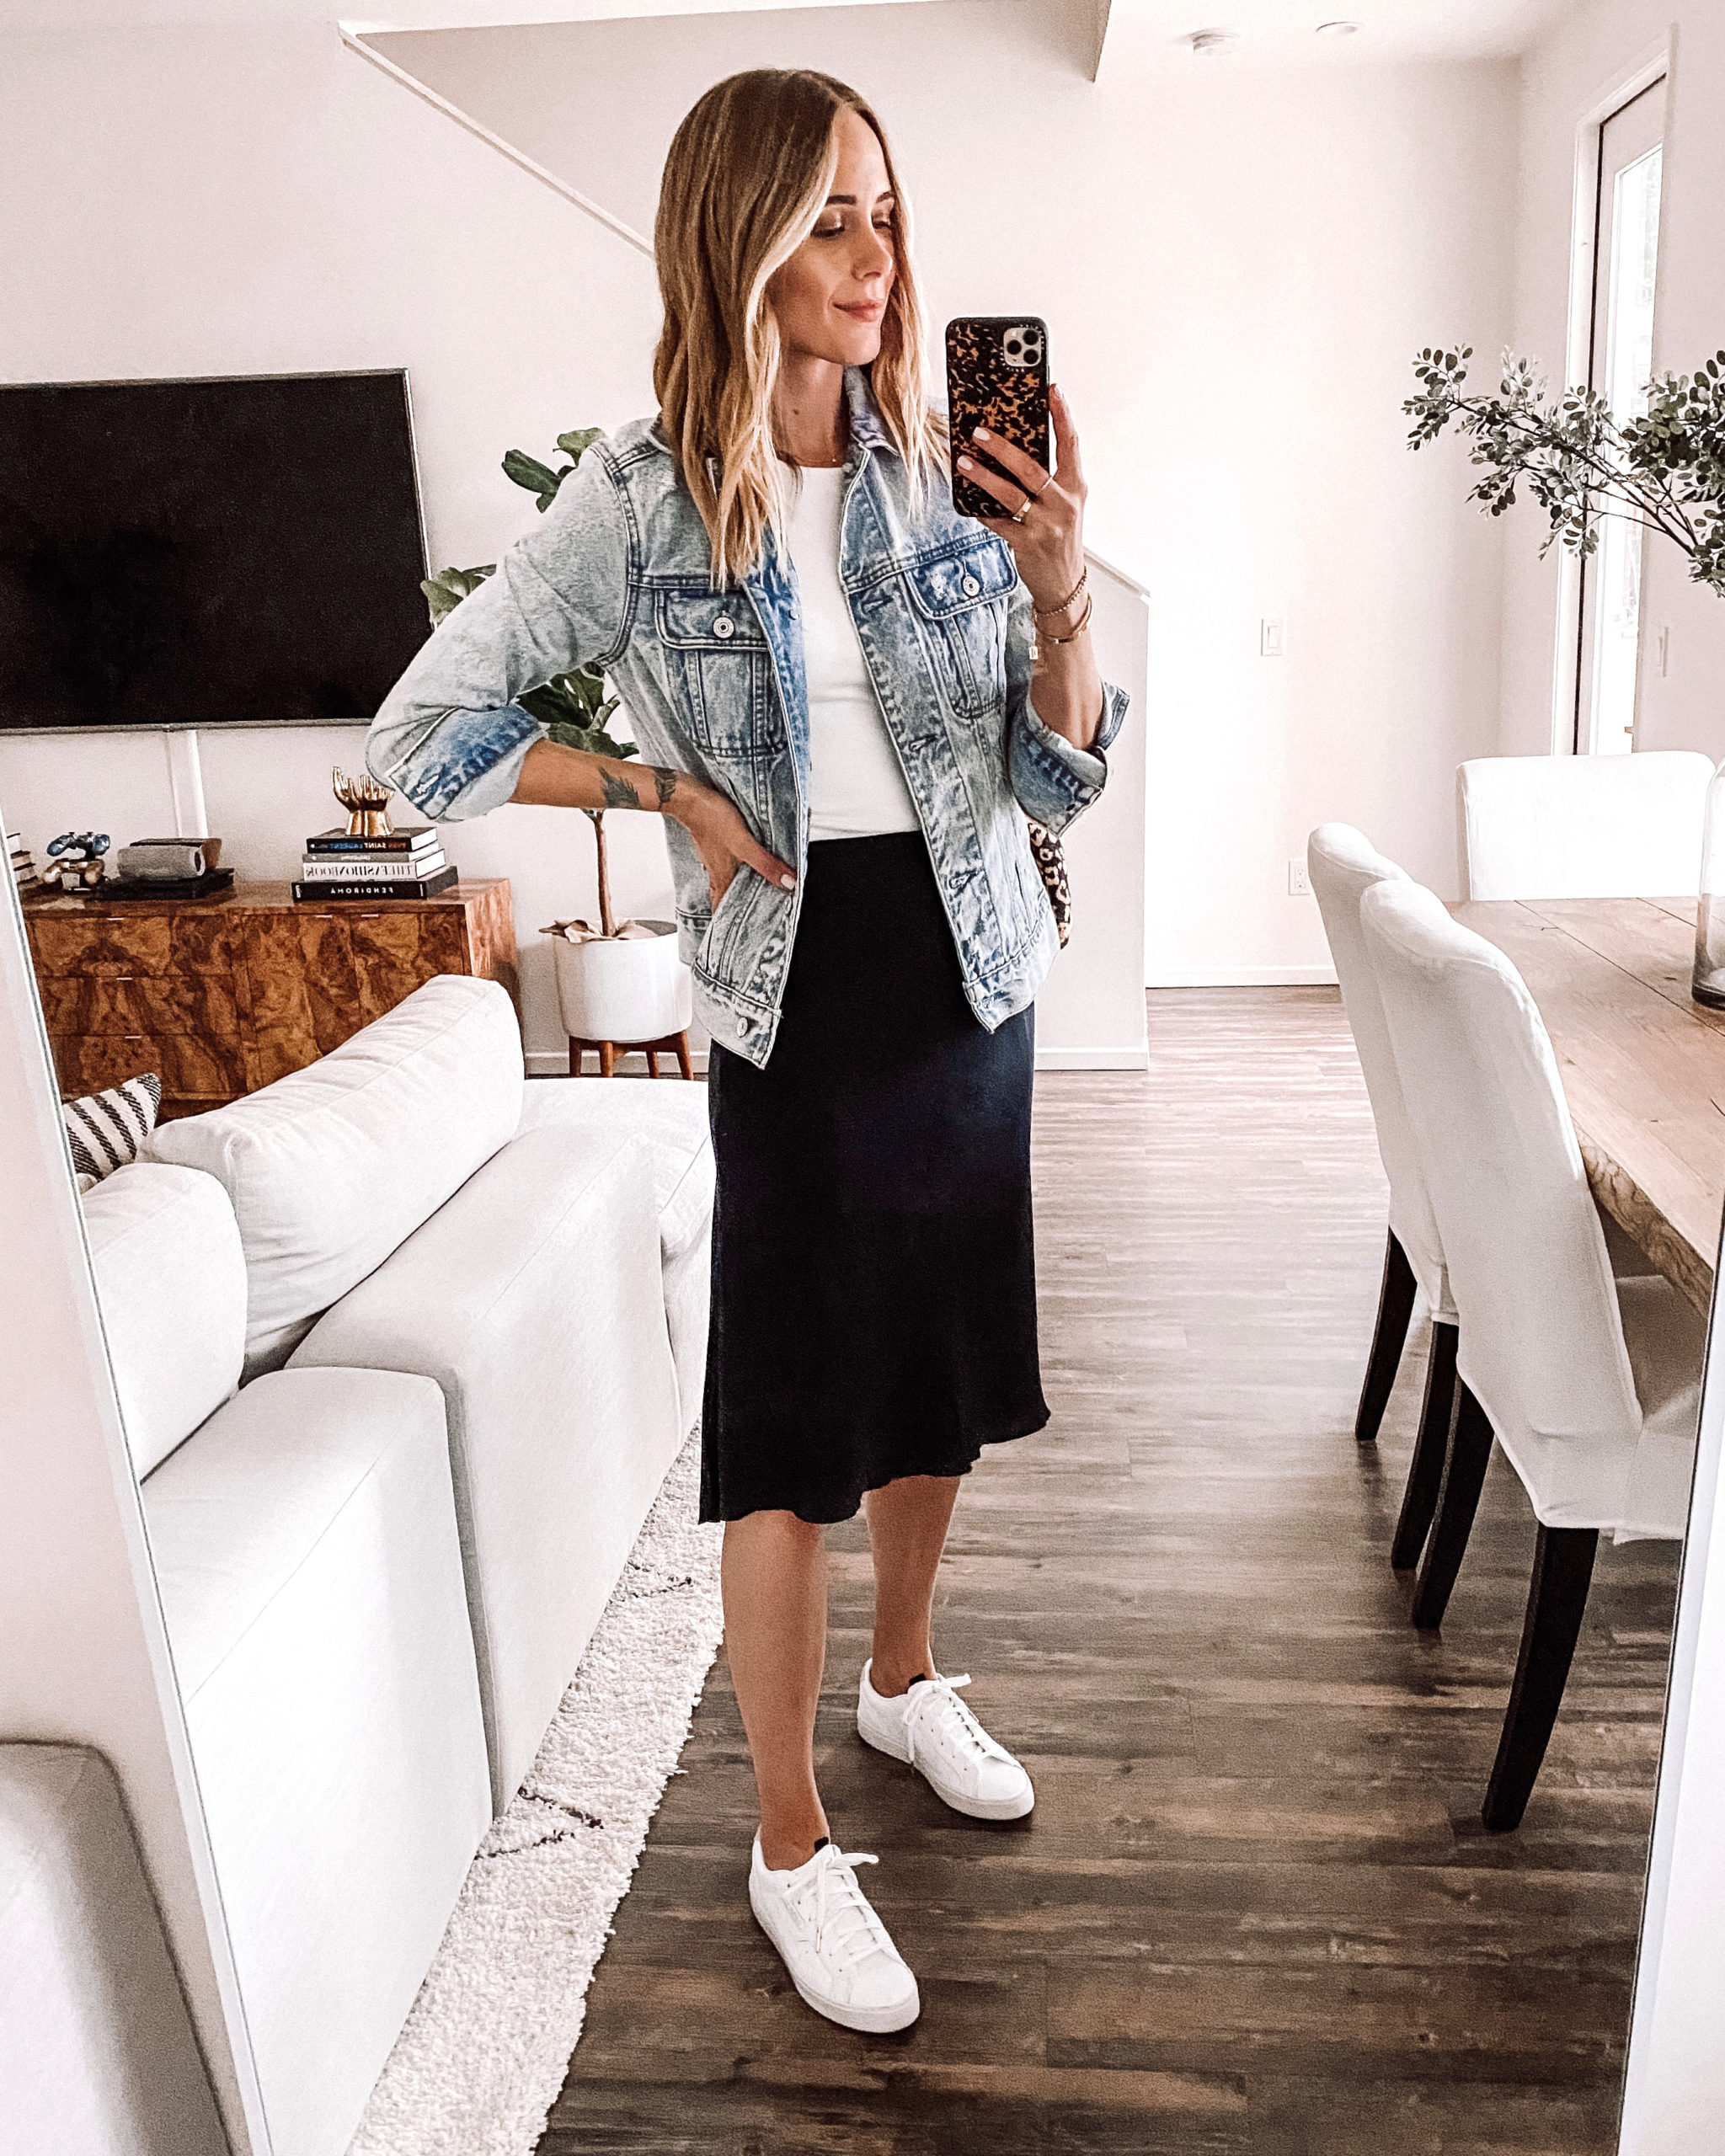 Fashion Jackson Wearing Abercrombie Denim Jacket White Bodysuit Black Slip Skirt White Sneakers